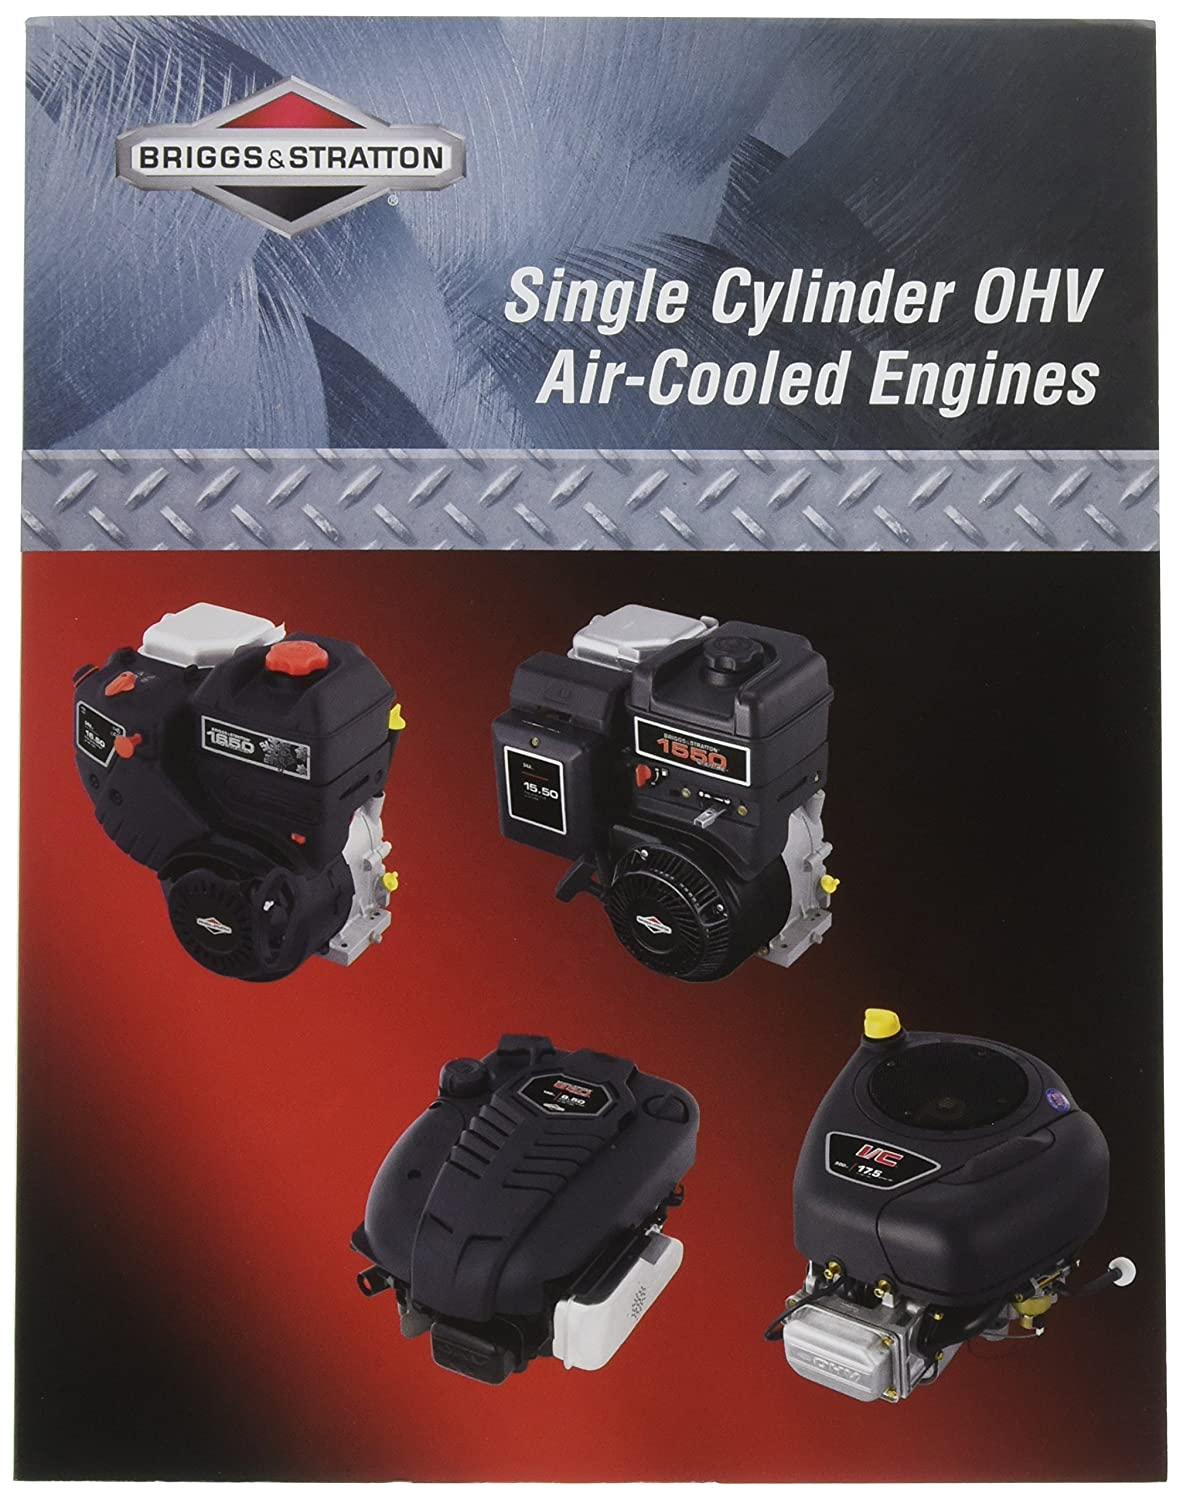 Amazon.com : Briggs & Stratton 276781 Single Cylinder OHV Repair Manual :  Lawn Mower Parts : Garden & Outdoor